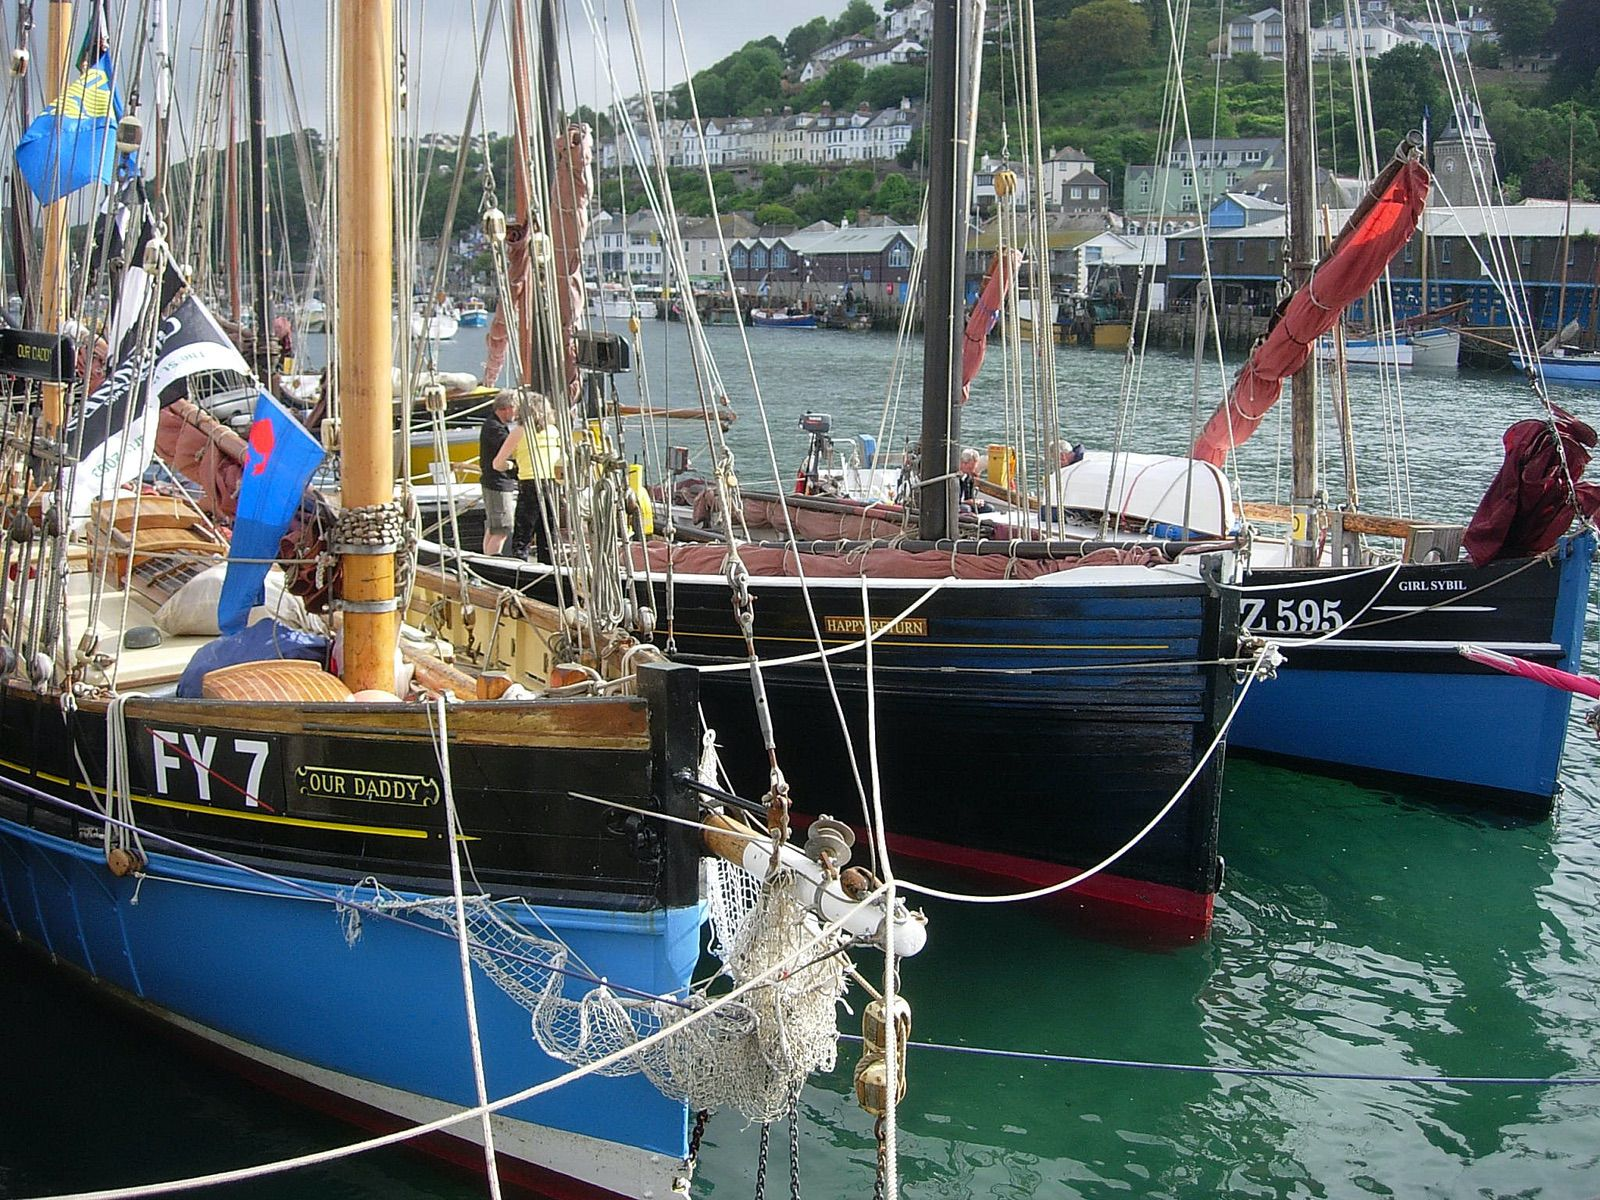 Cornish Lugger Our Daddy in Looe at Lugger Regatta